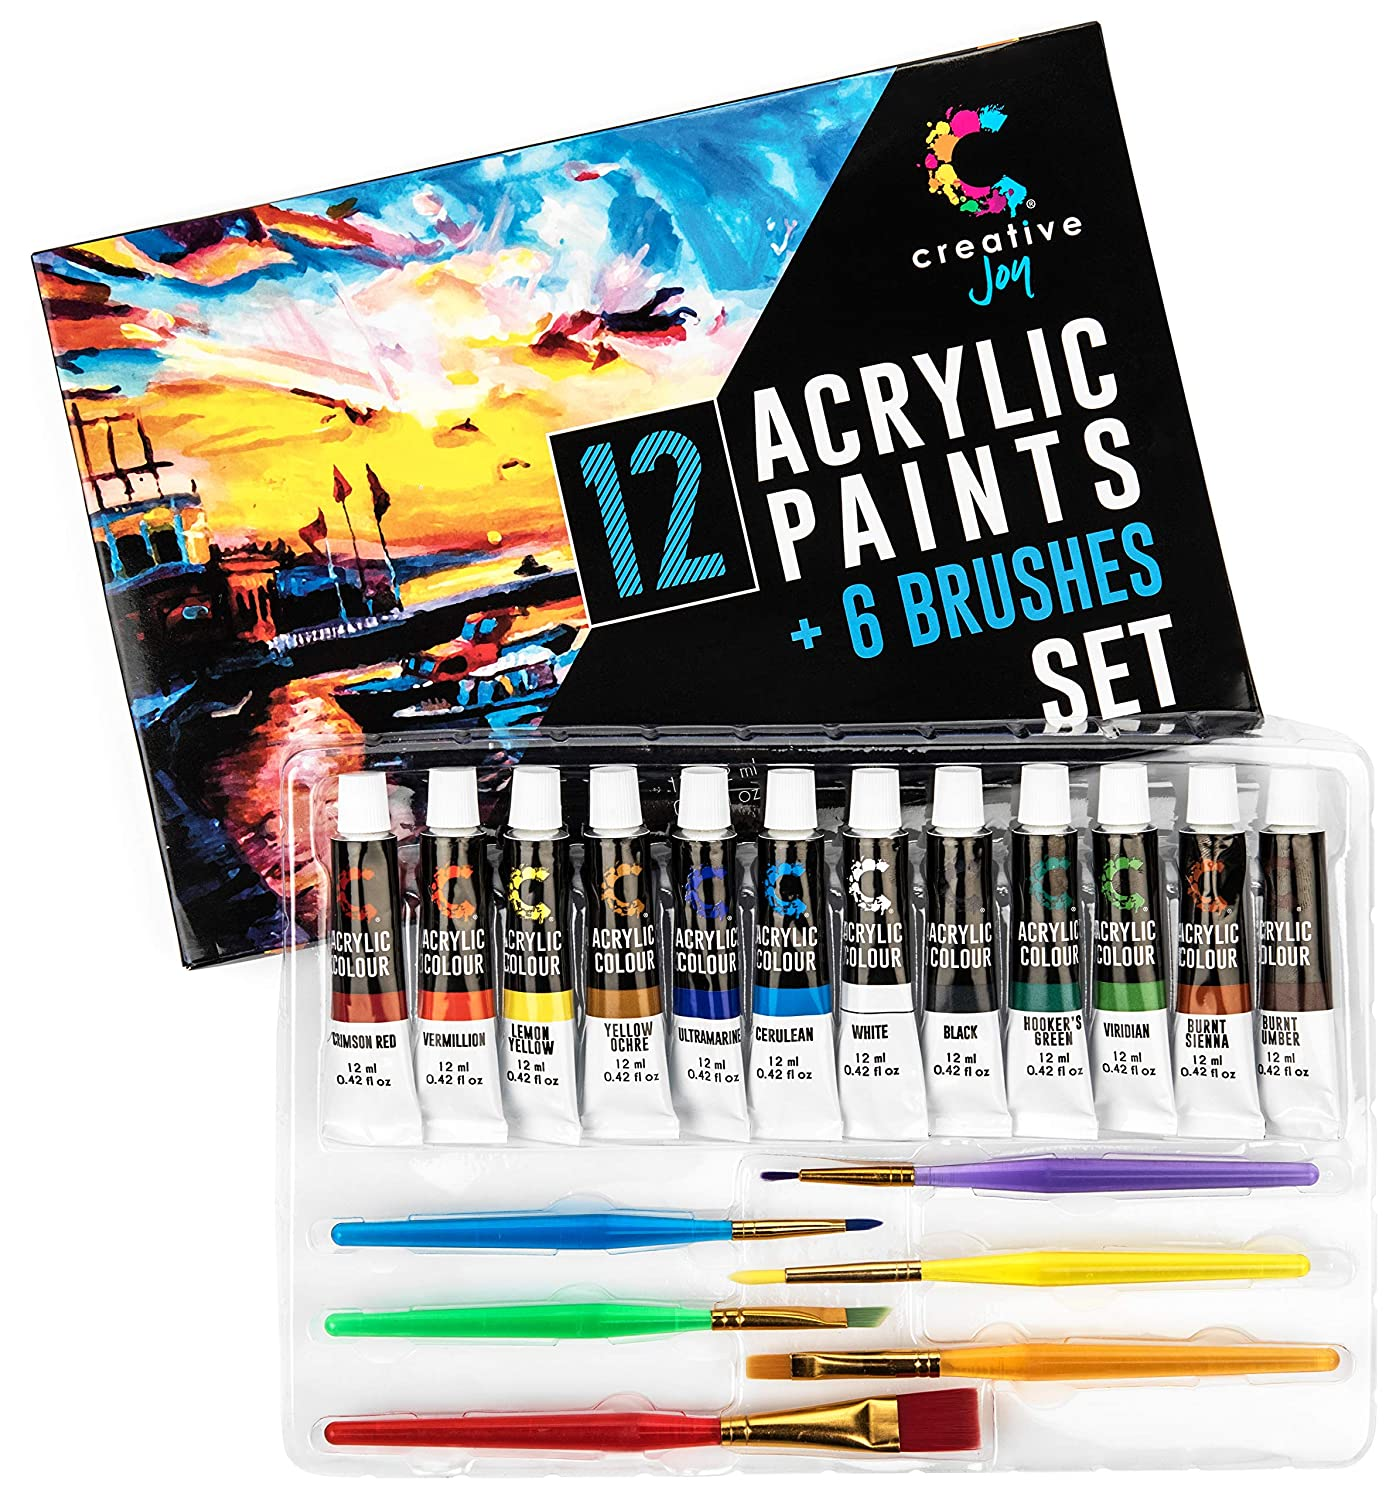 Creative Joy Acrylic Paint Set & Brushes with Rich Pigments in 12 Vivid Colors with 6 Starter Brushes is Great for Beginners and Hobby Painters from Kids Through Adults FBA_CJAPB01